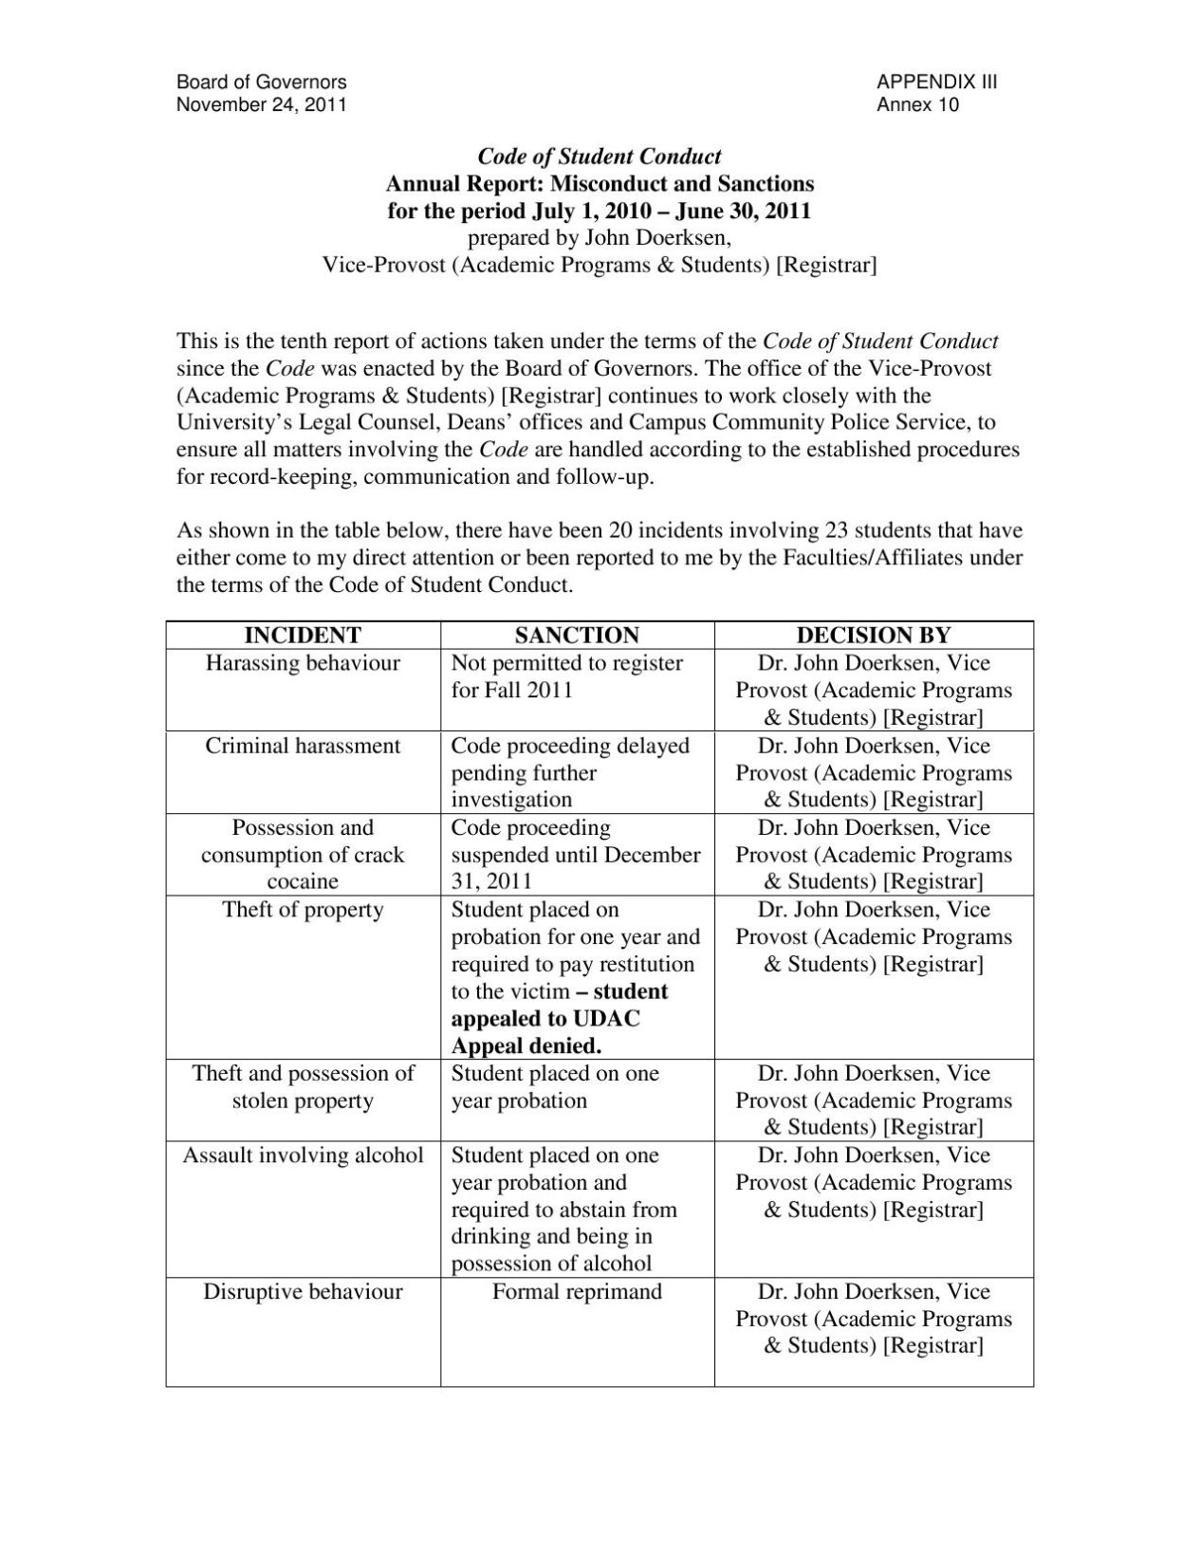 2011 Code of Student Conduct.pdf